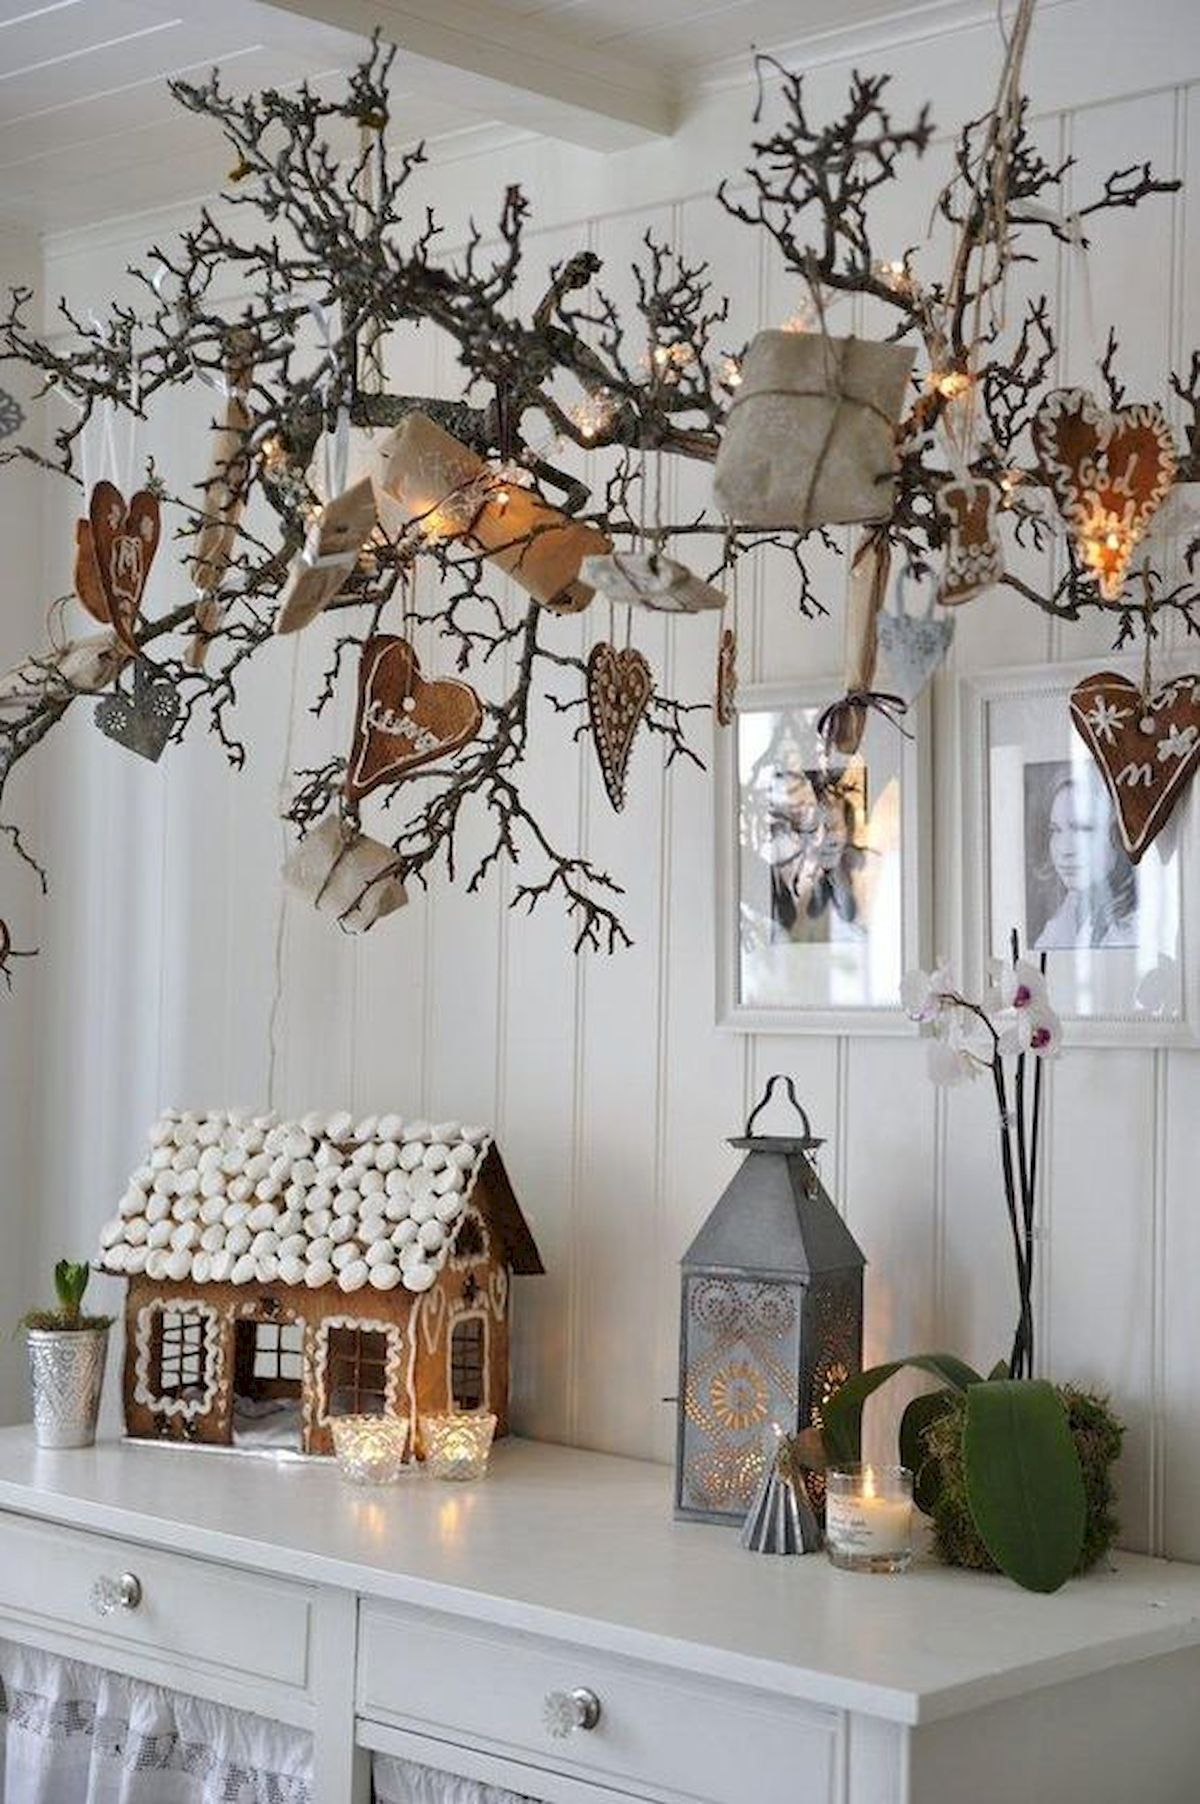 Gorgeous 40 Stunning Rustic Christmas Decor Ideas Httpscoachdecorcom40